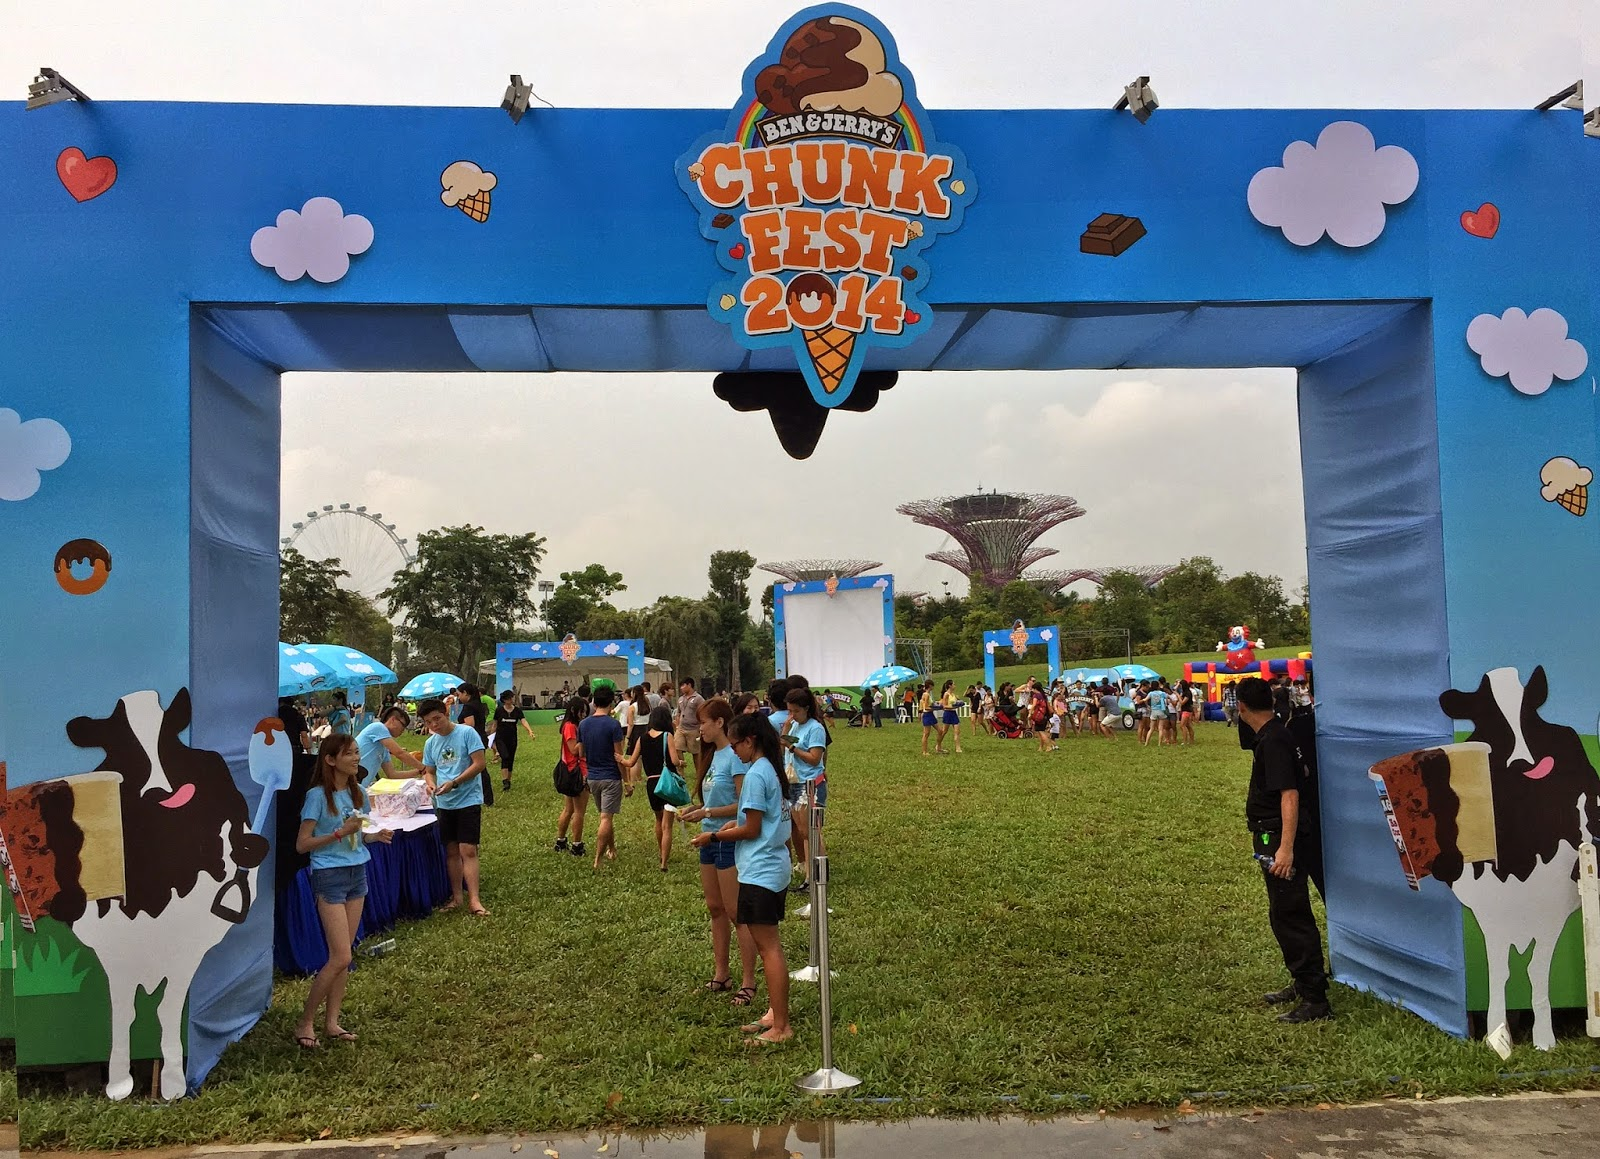 Ben and Jerry's Chunkfest 2014